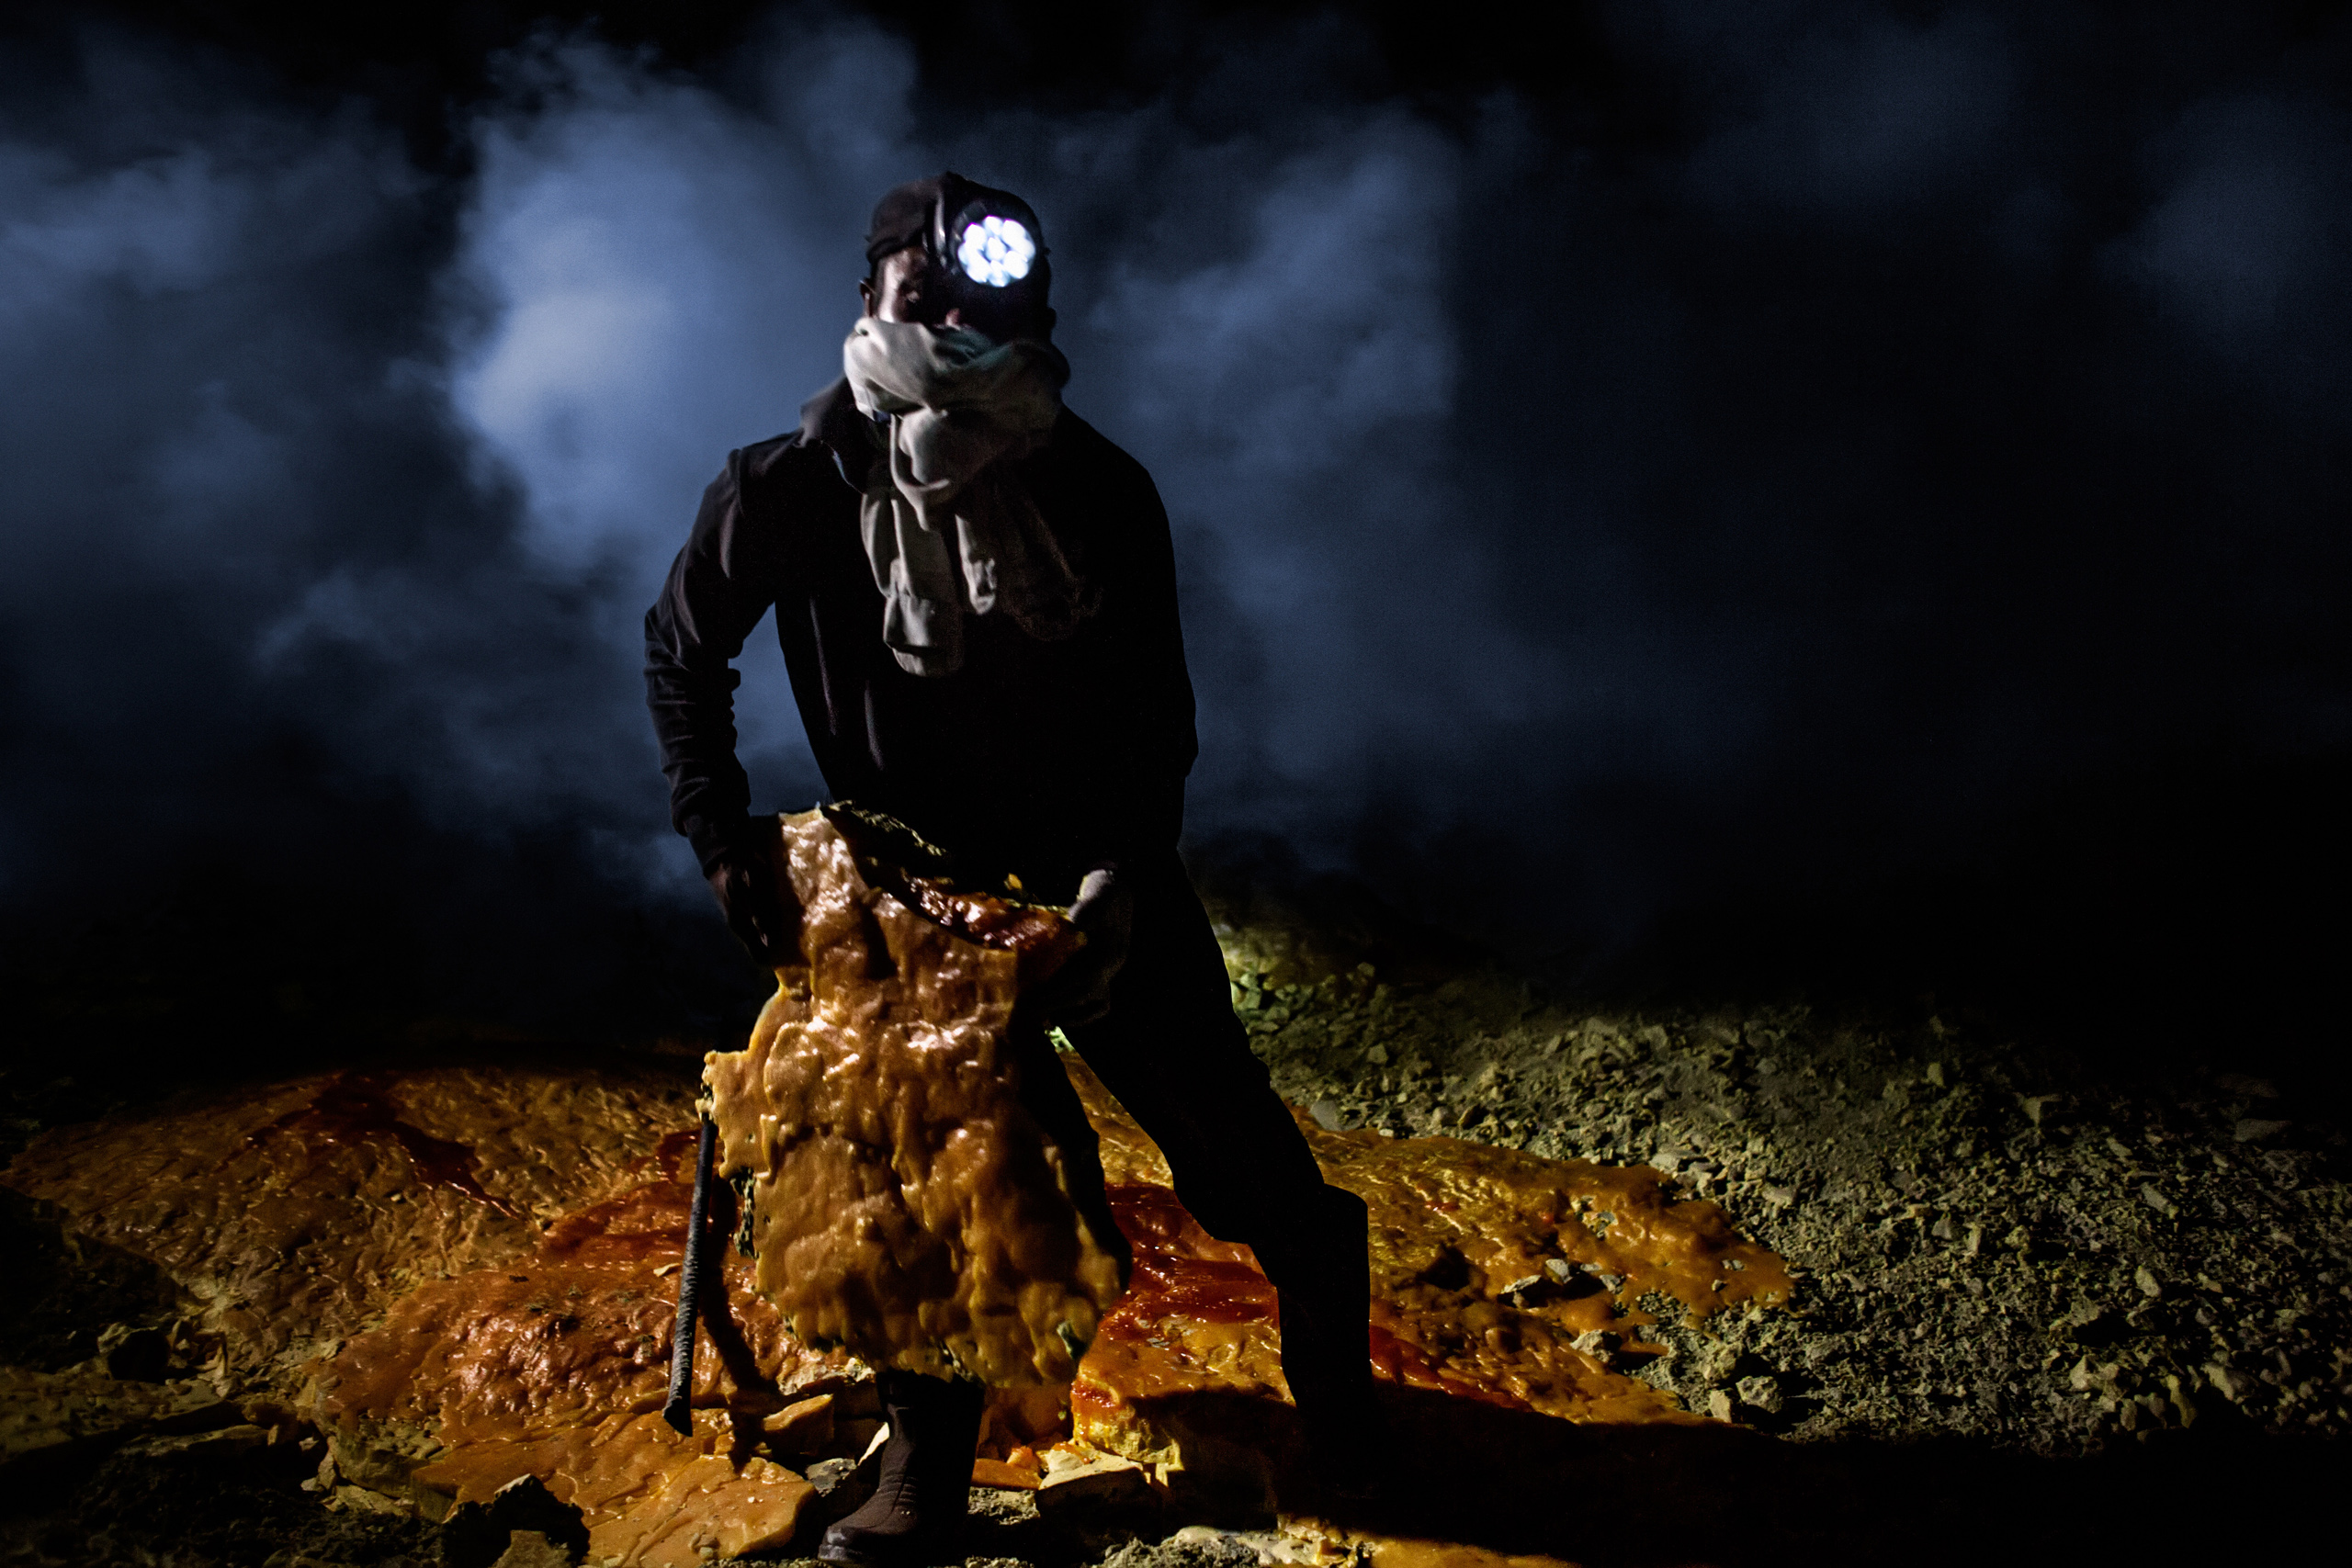 Zainuri, 26, a sulfur miner for the past eight years, removes a sulfur slab,  Nov. 2, 2014.